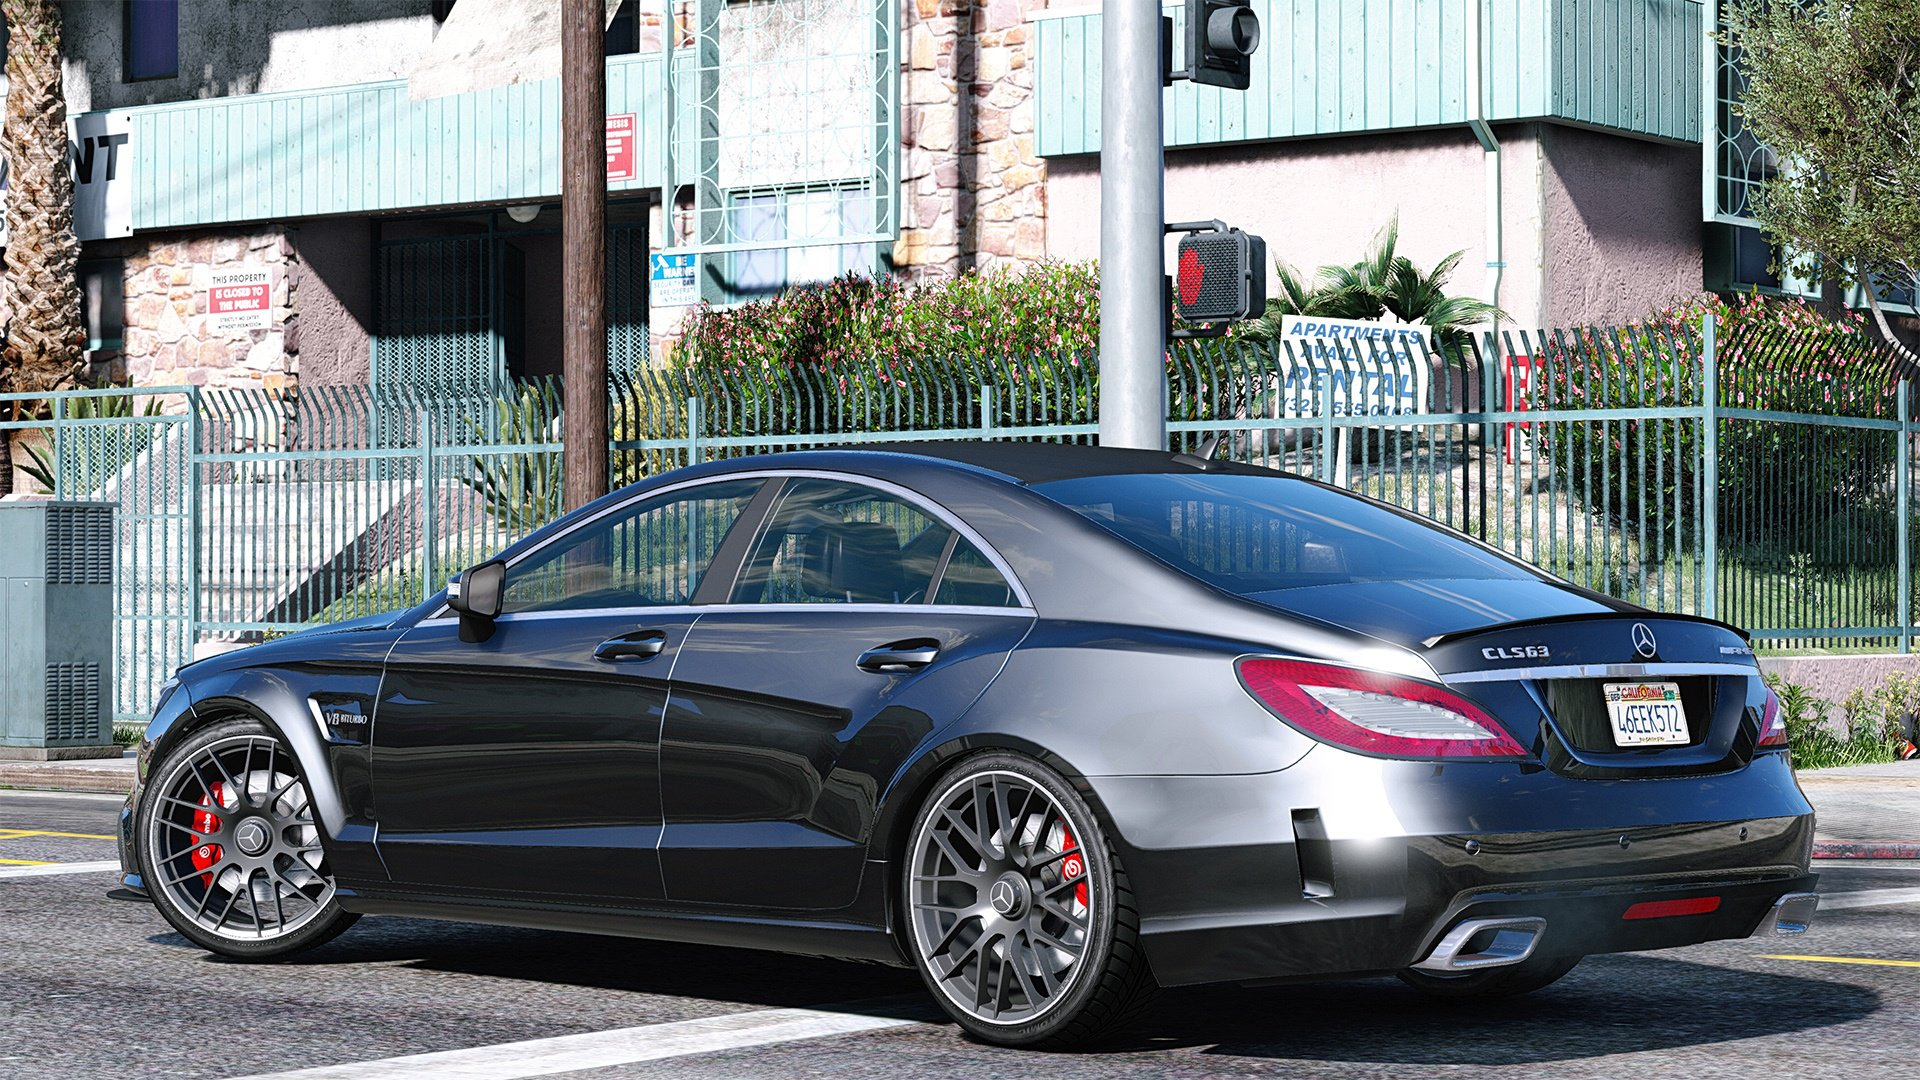 Mercedes Benz Cls 6 3 Amg 2015 Add On Vehicules Pour